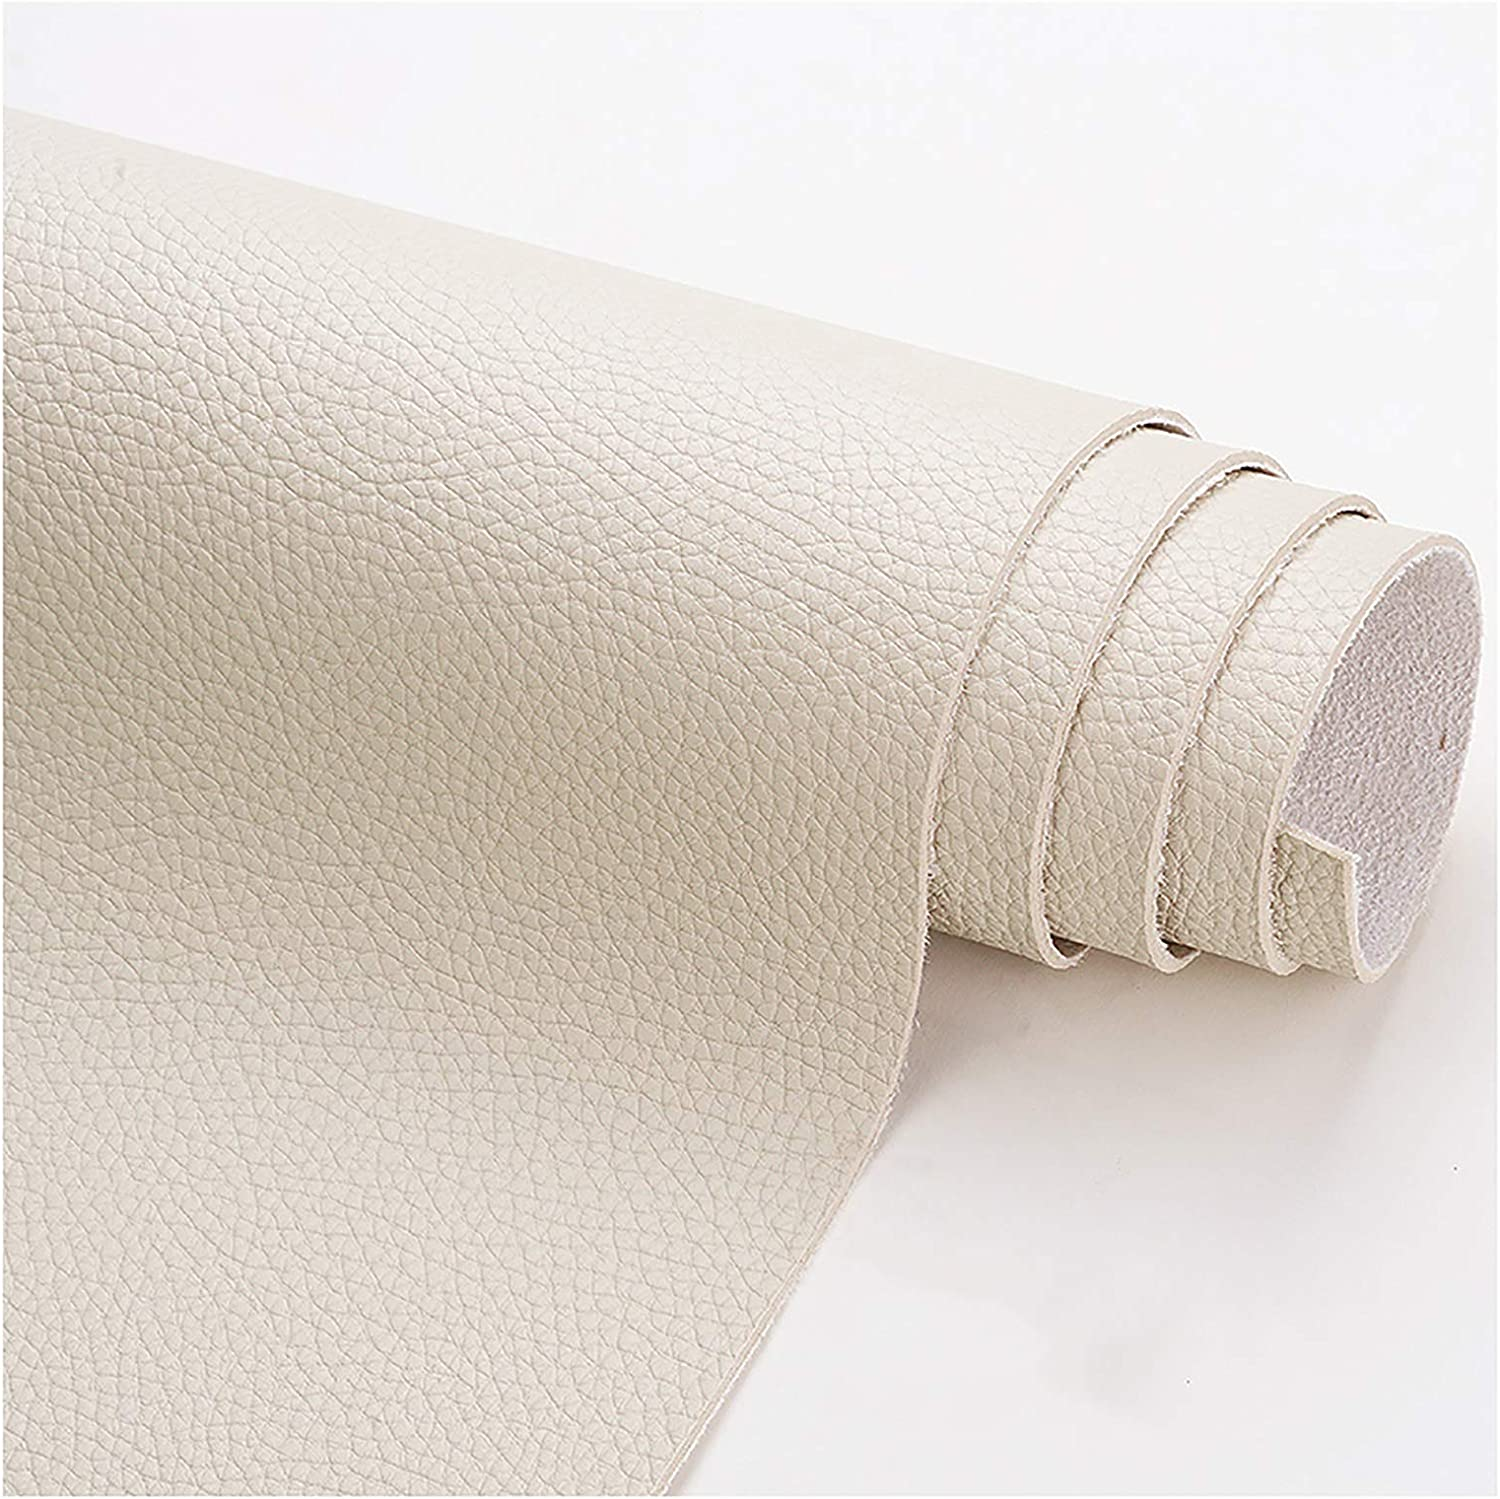 bandezid Fabric Leatherette Leather 67% OFF of fixed price Tooling Sewing Indianapolis Mall Craft